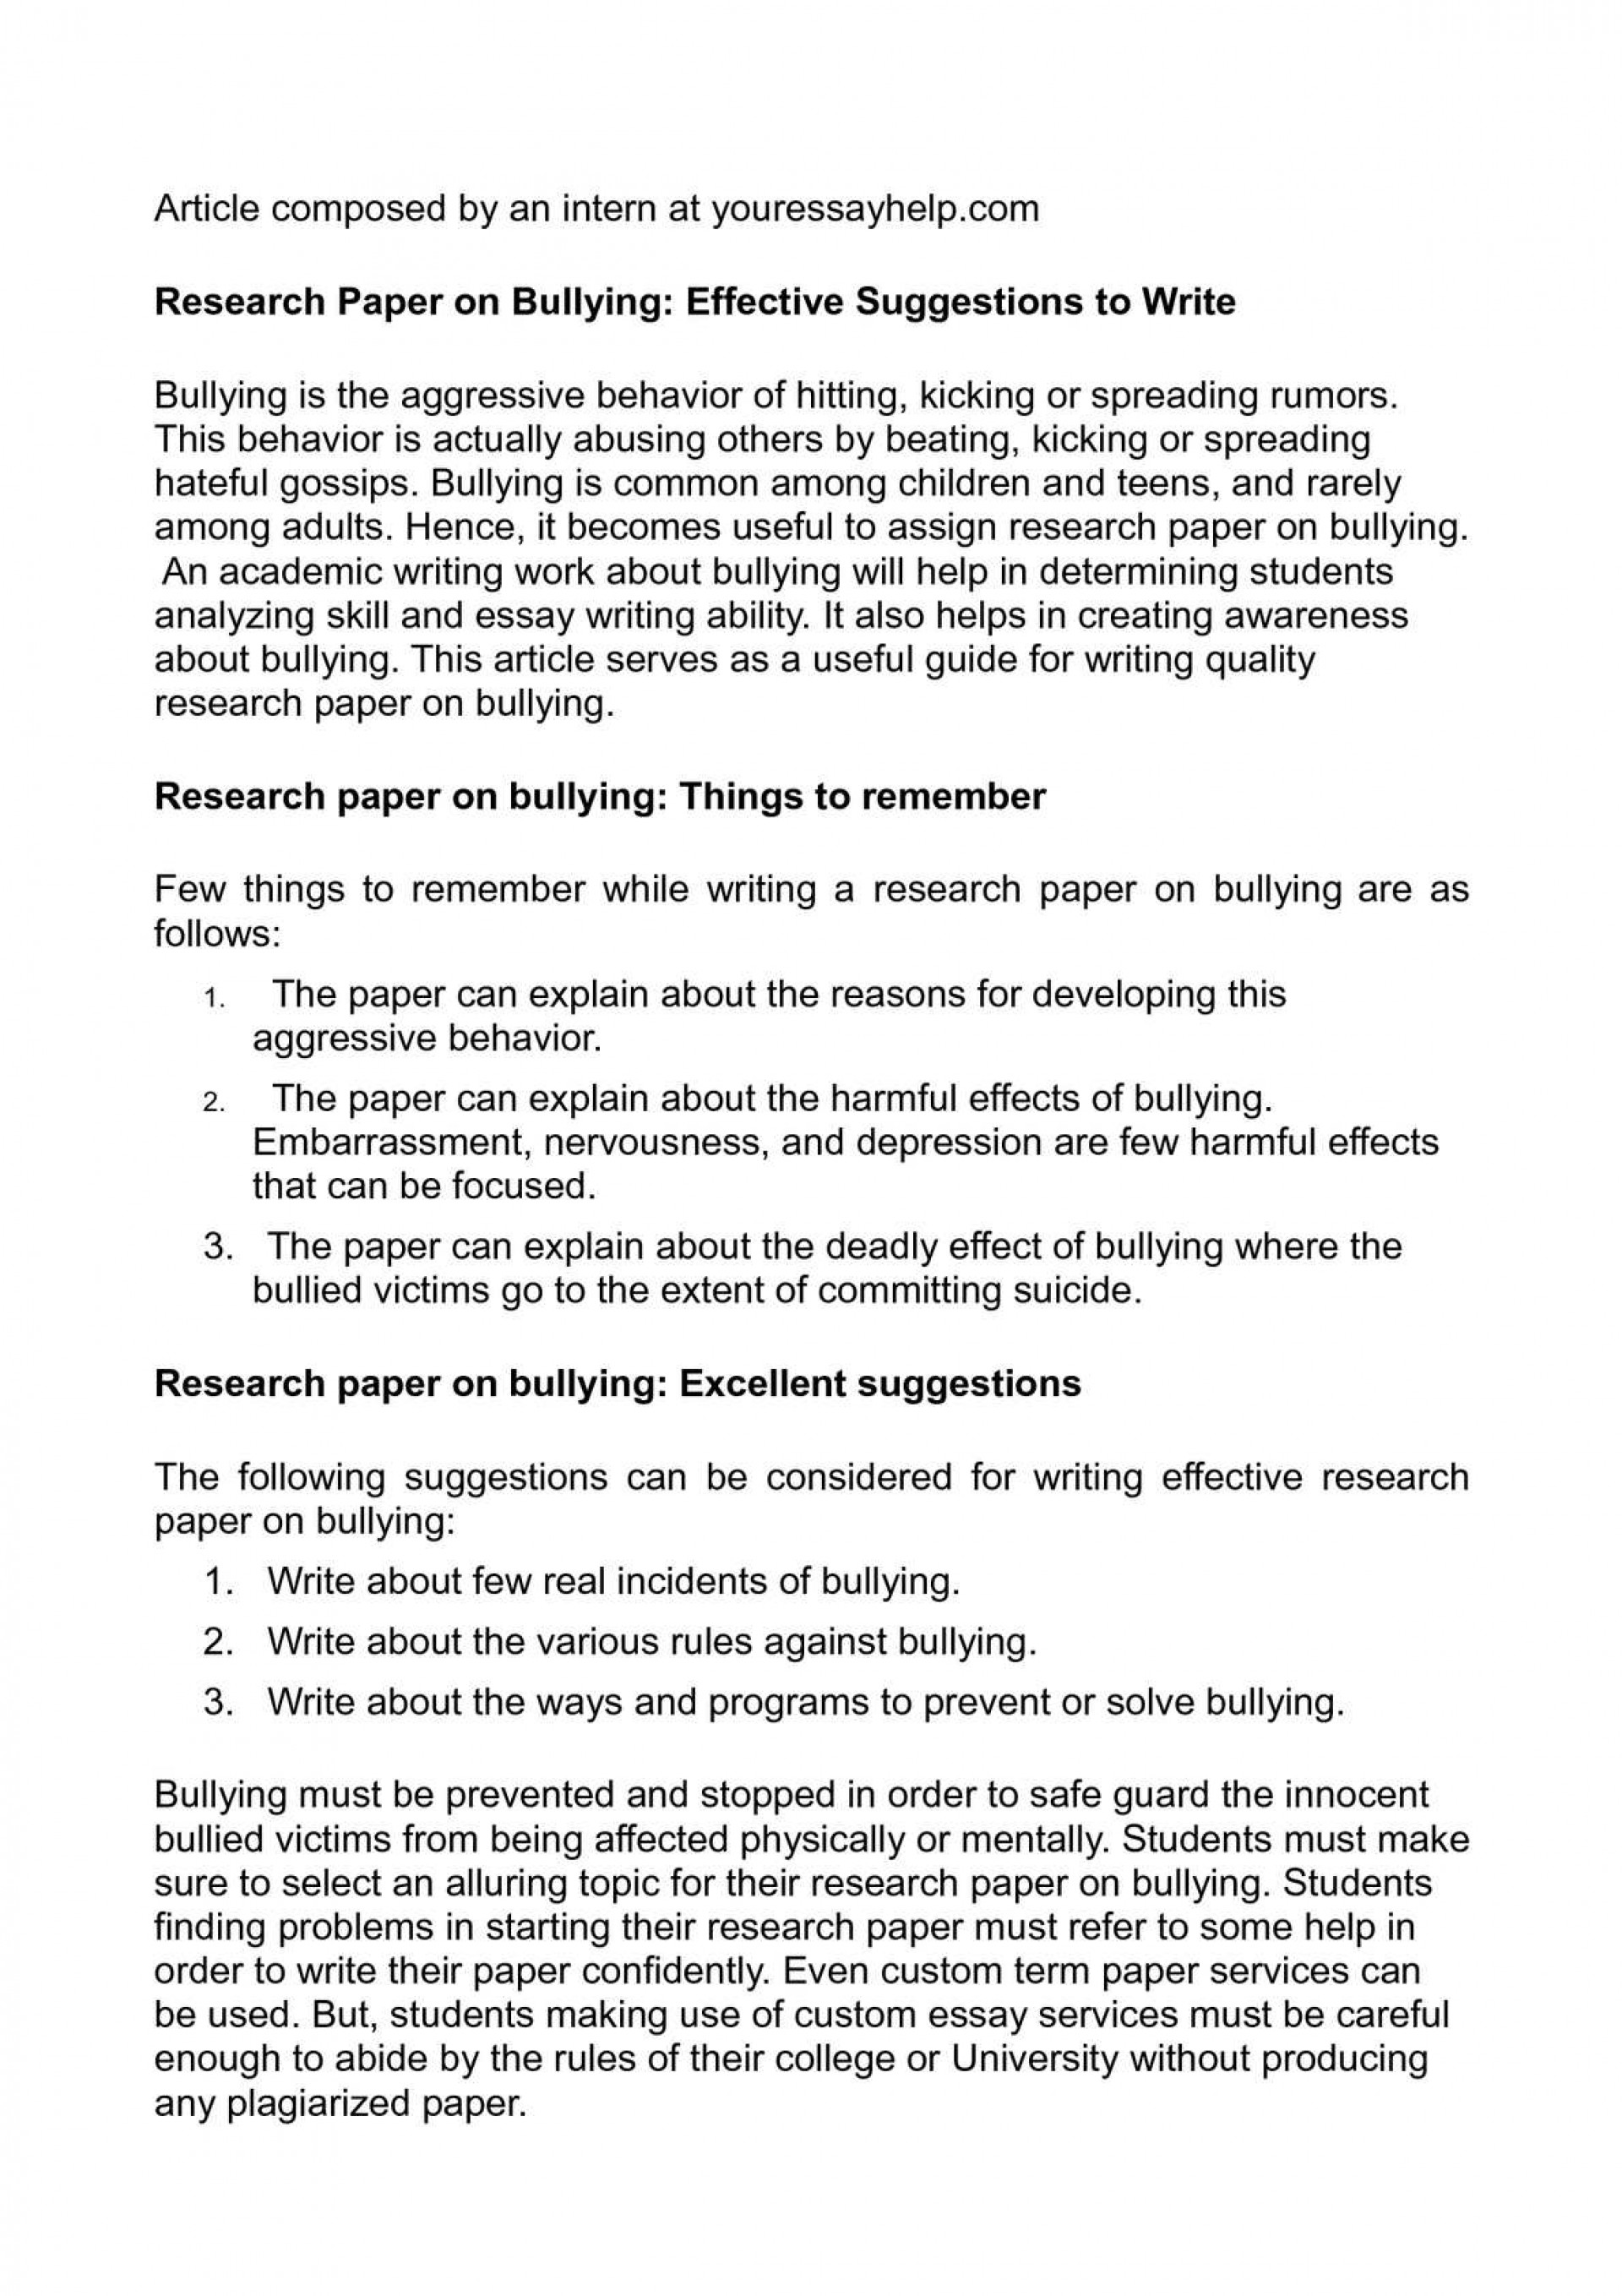 002 Research Paper On Bullying Surprising Articles Pdf In The Philippines 1920